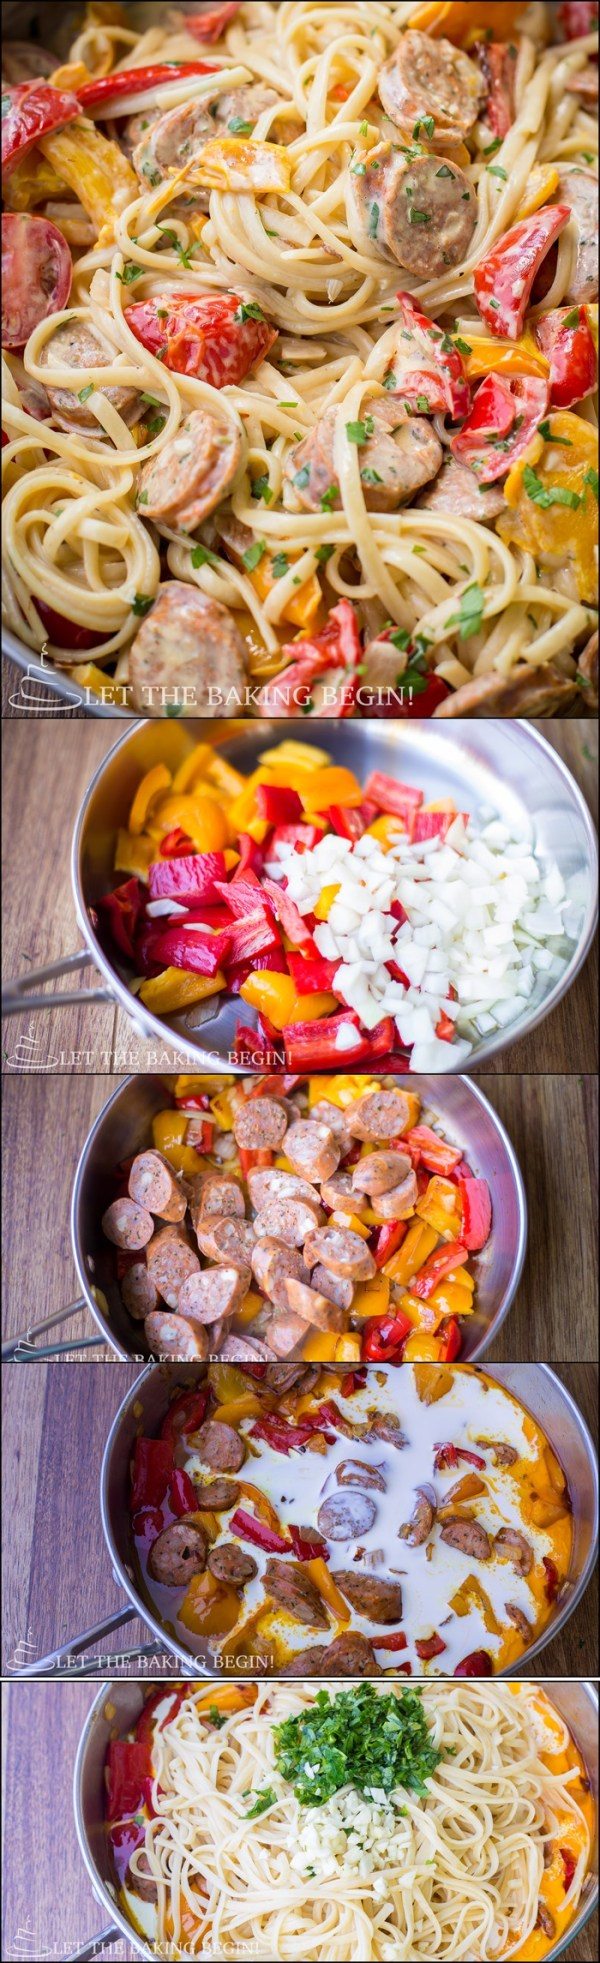 Quick & Delicious, Sausage Pepper Fettuccine Skillet is a Dinner That's Sure to Impress Your Family. by Let the Baking Begin Blog!